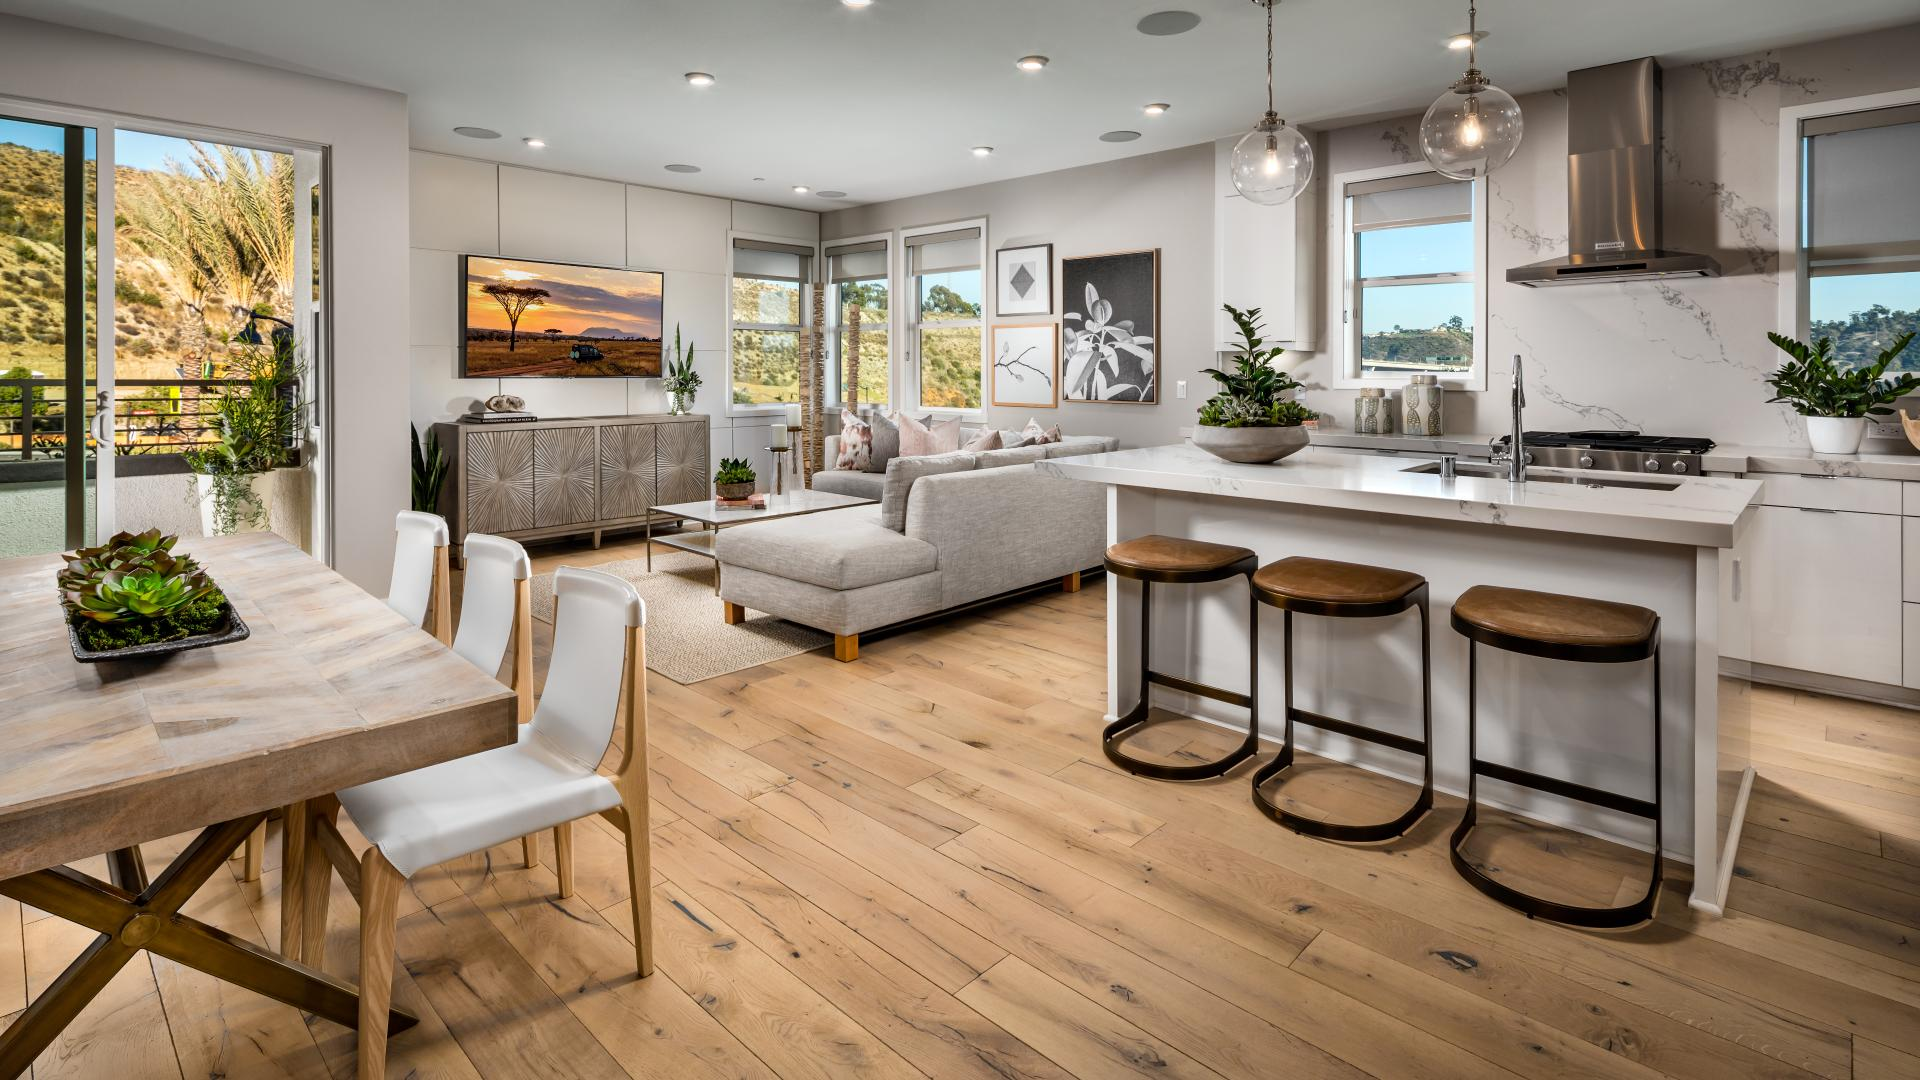 Open-concept home designs with plenty of room for entertaining